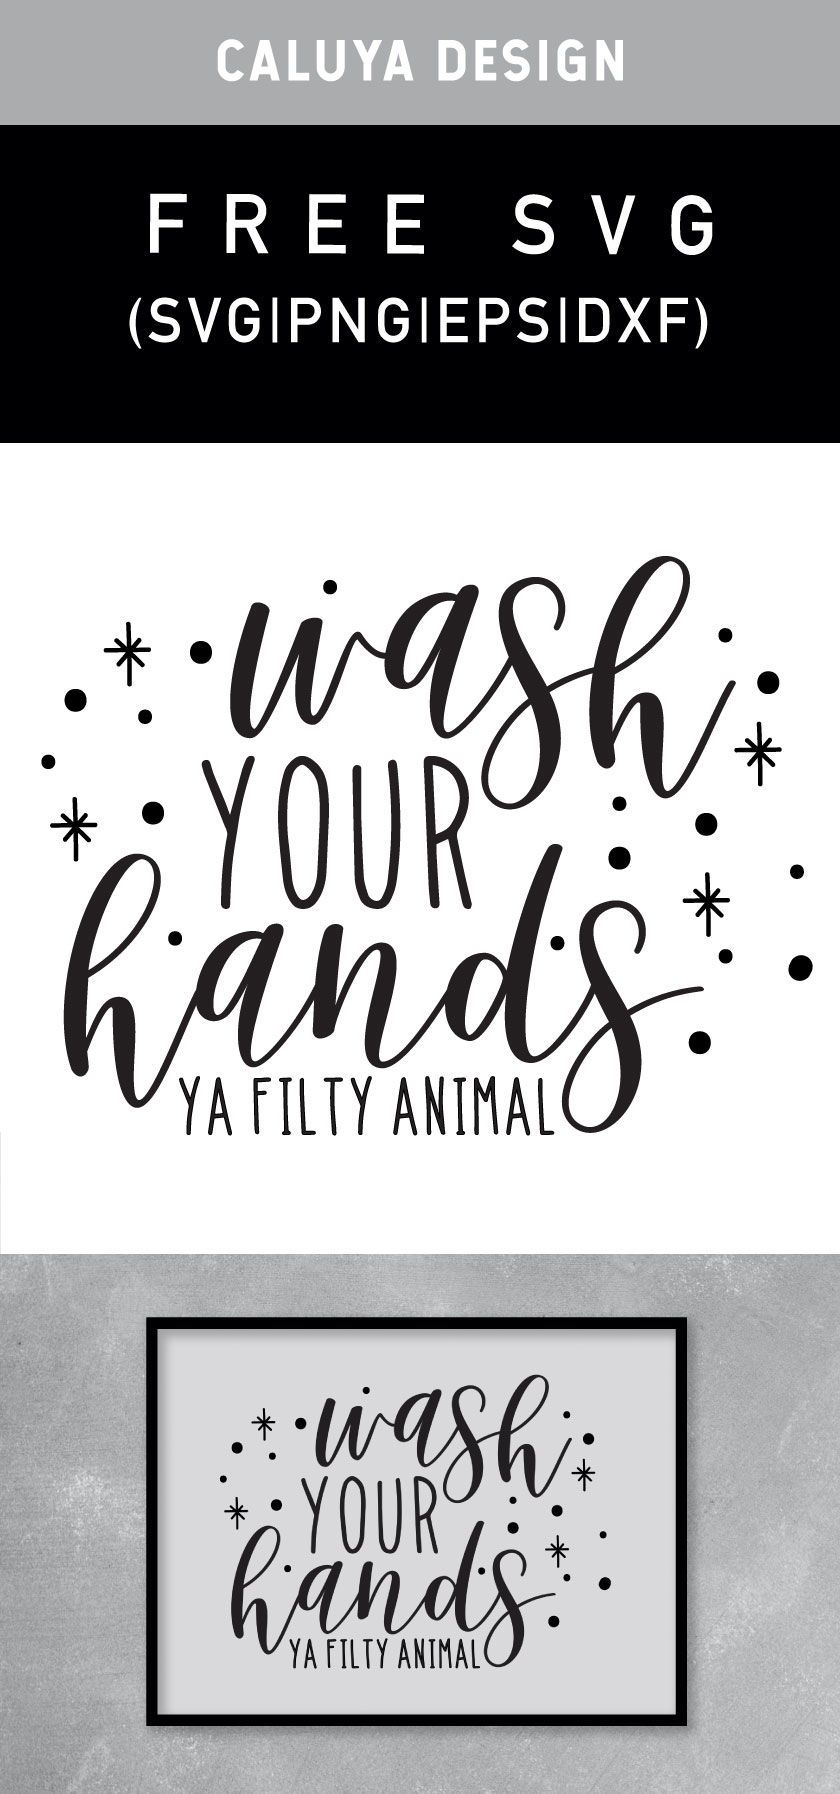 Free Wash Your Hands Svg Png Eps Dxf By Caluya Design In 2020 Cricut Projects Vinyl Cricut Vinyl How To Make Planner